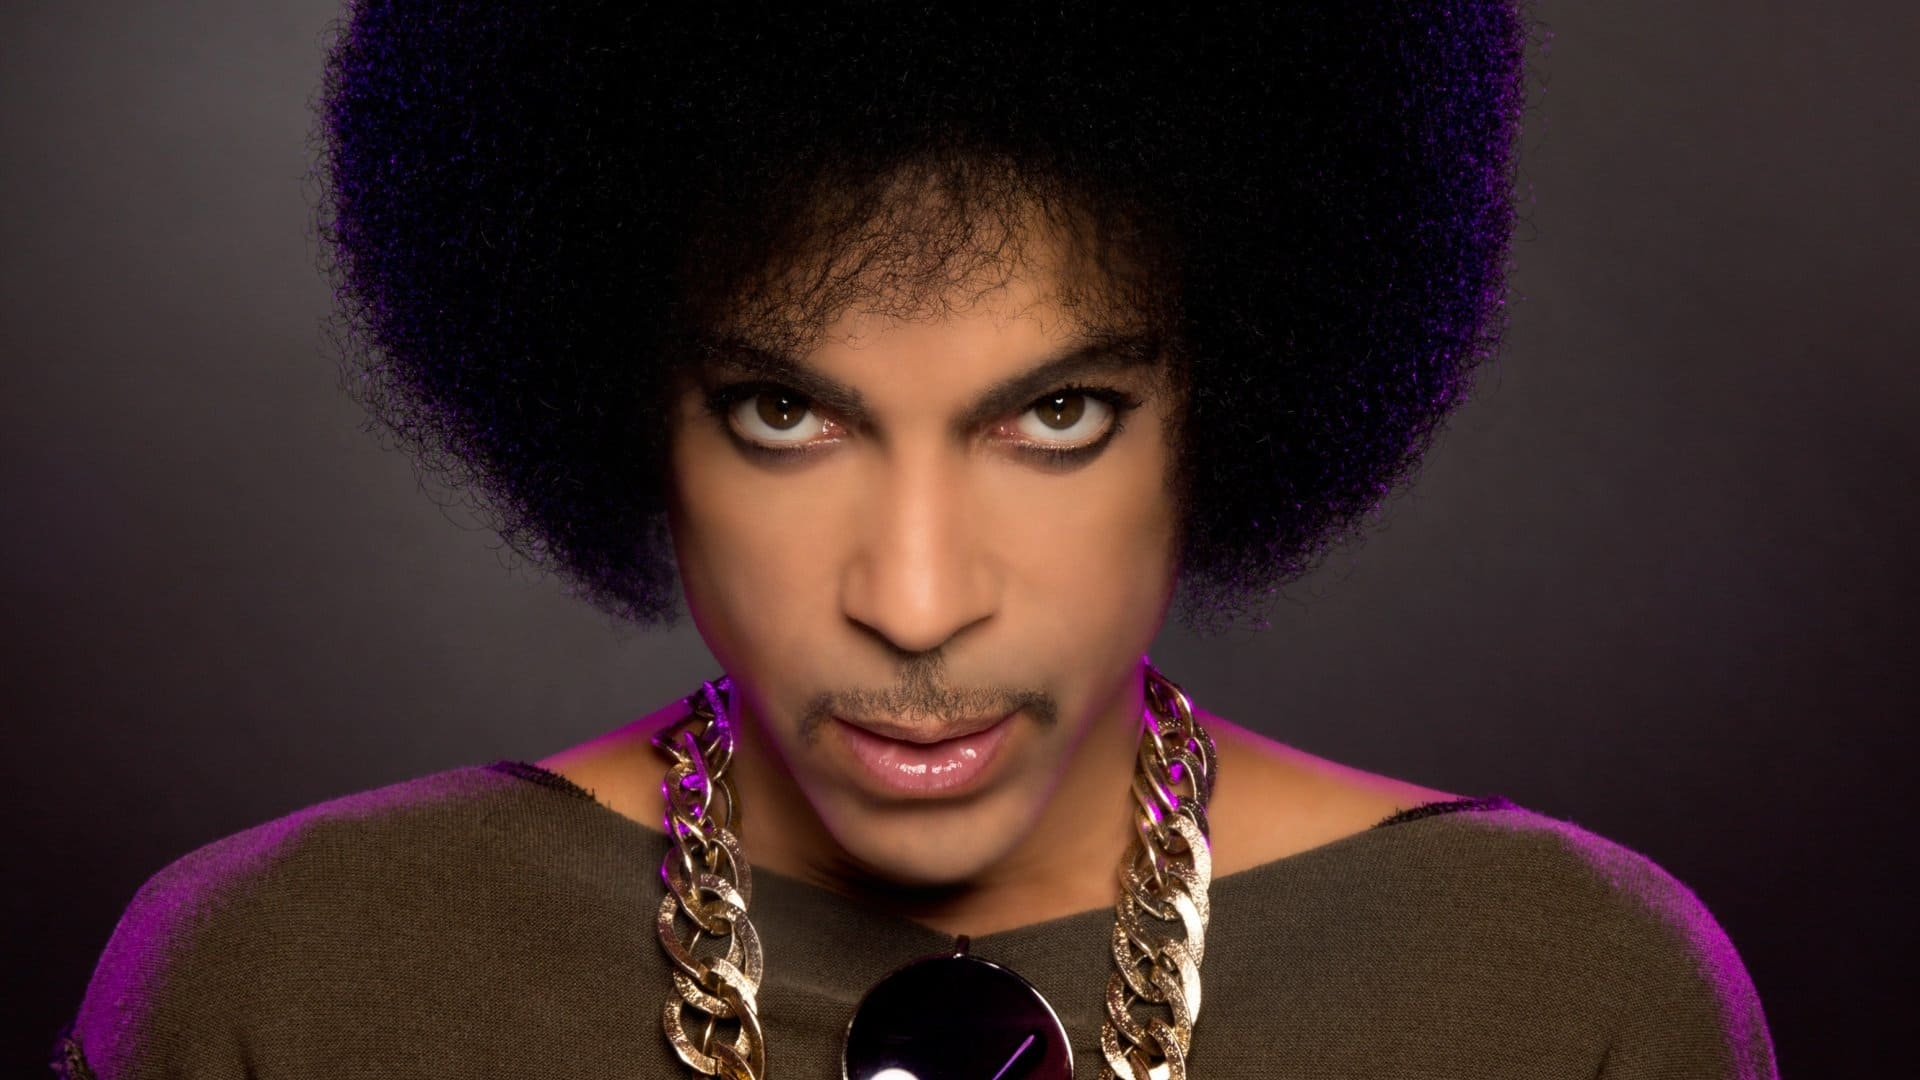 Best prince pictures